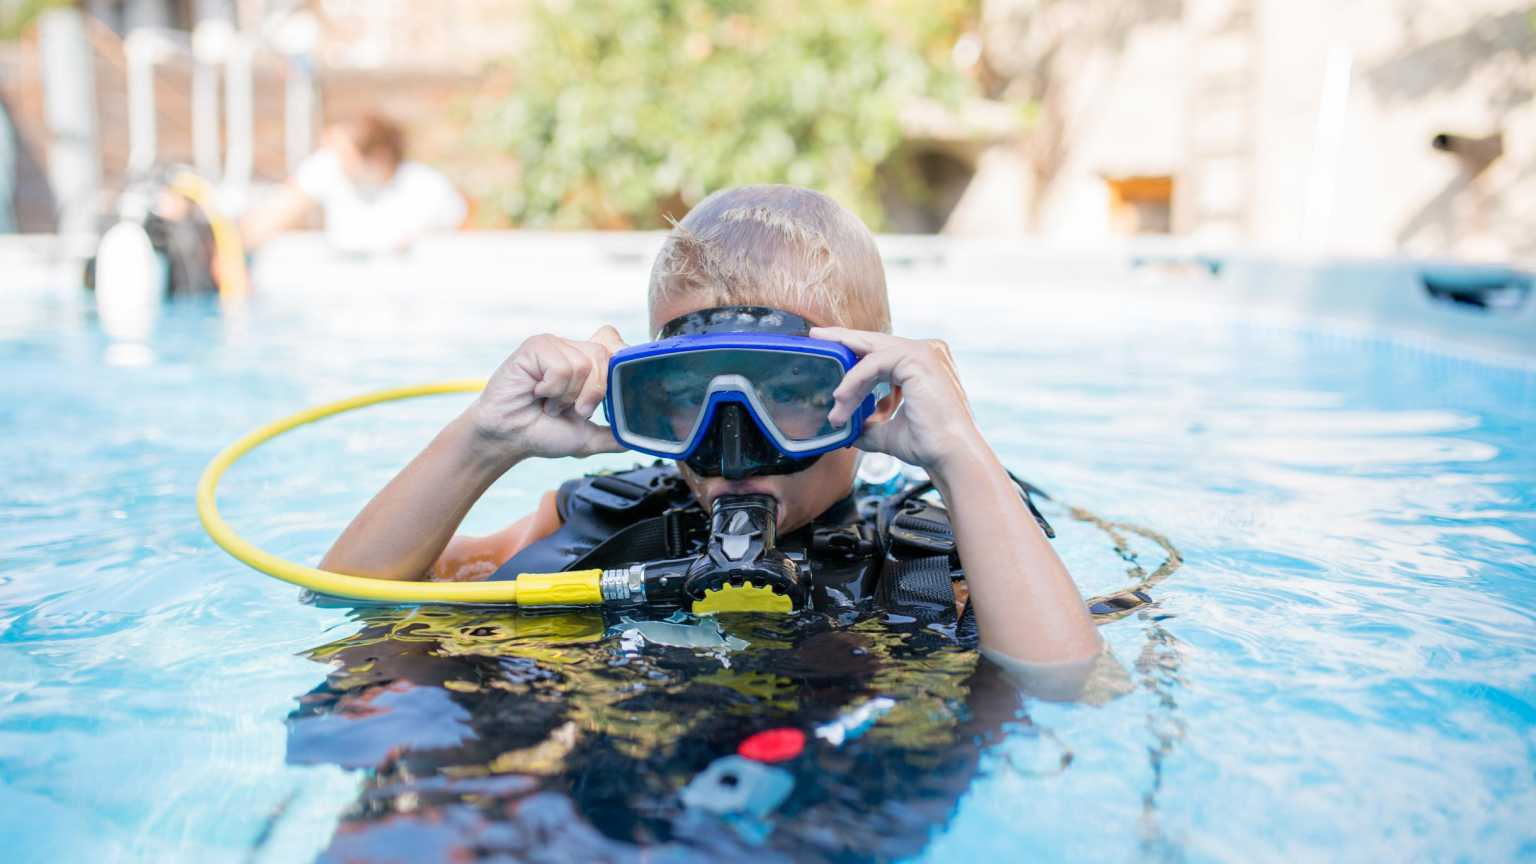 Child scuba diving in pool